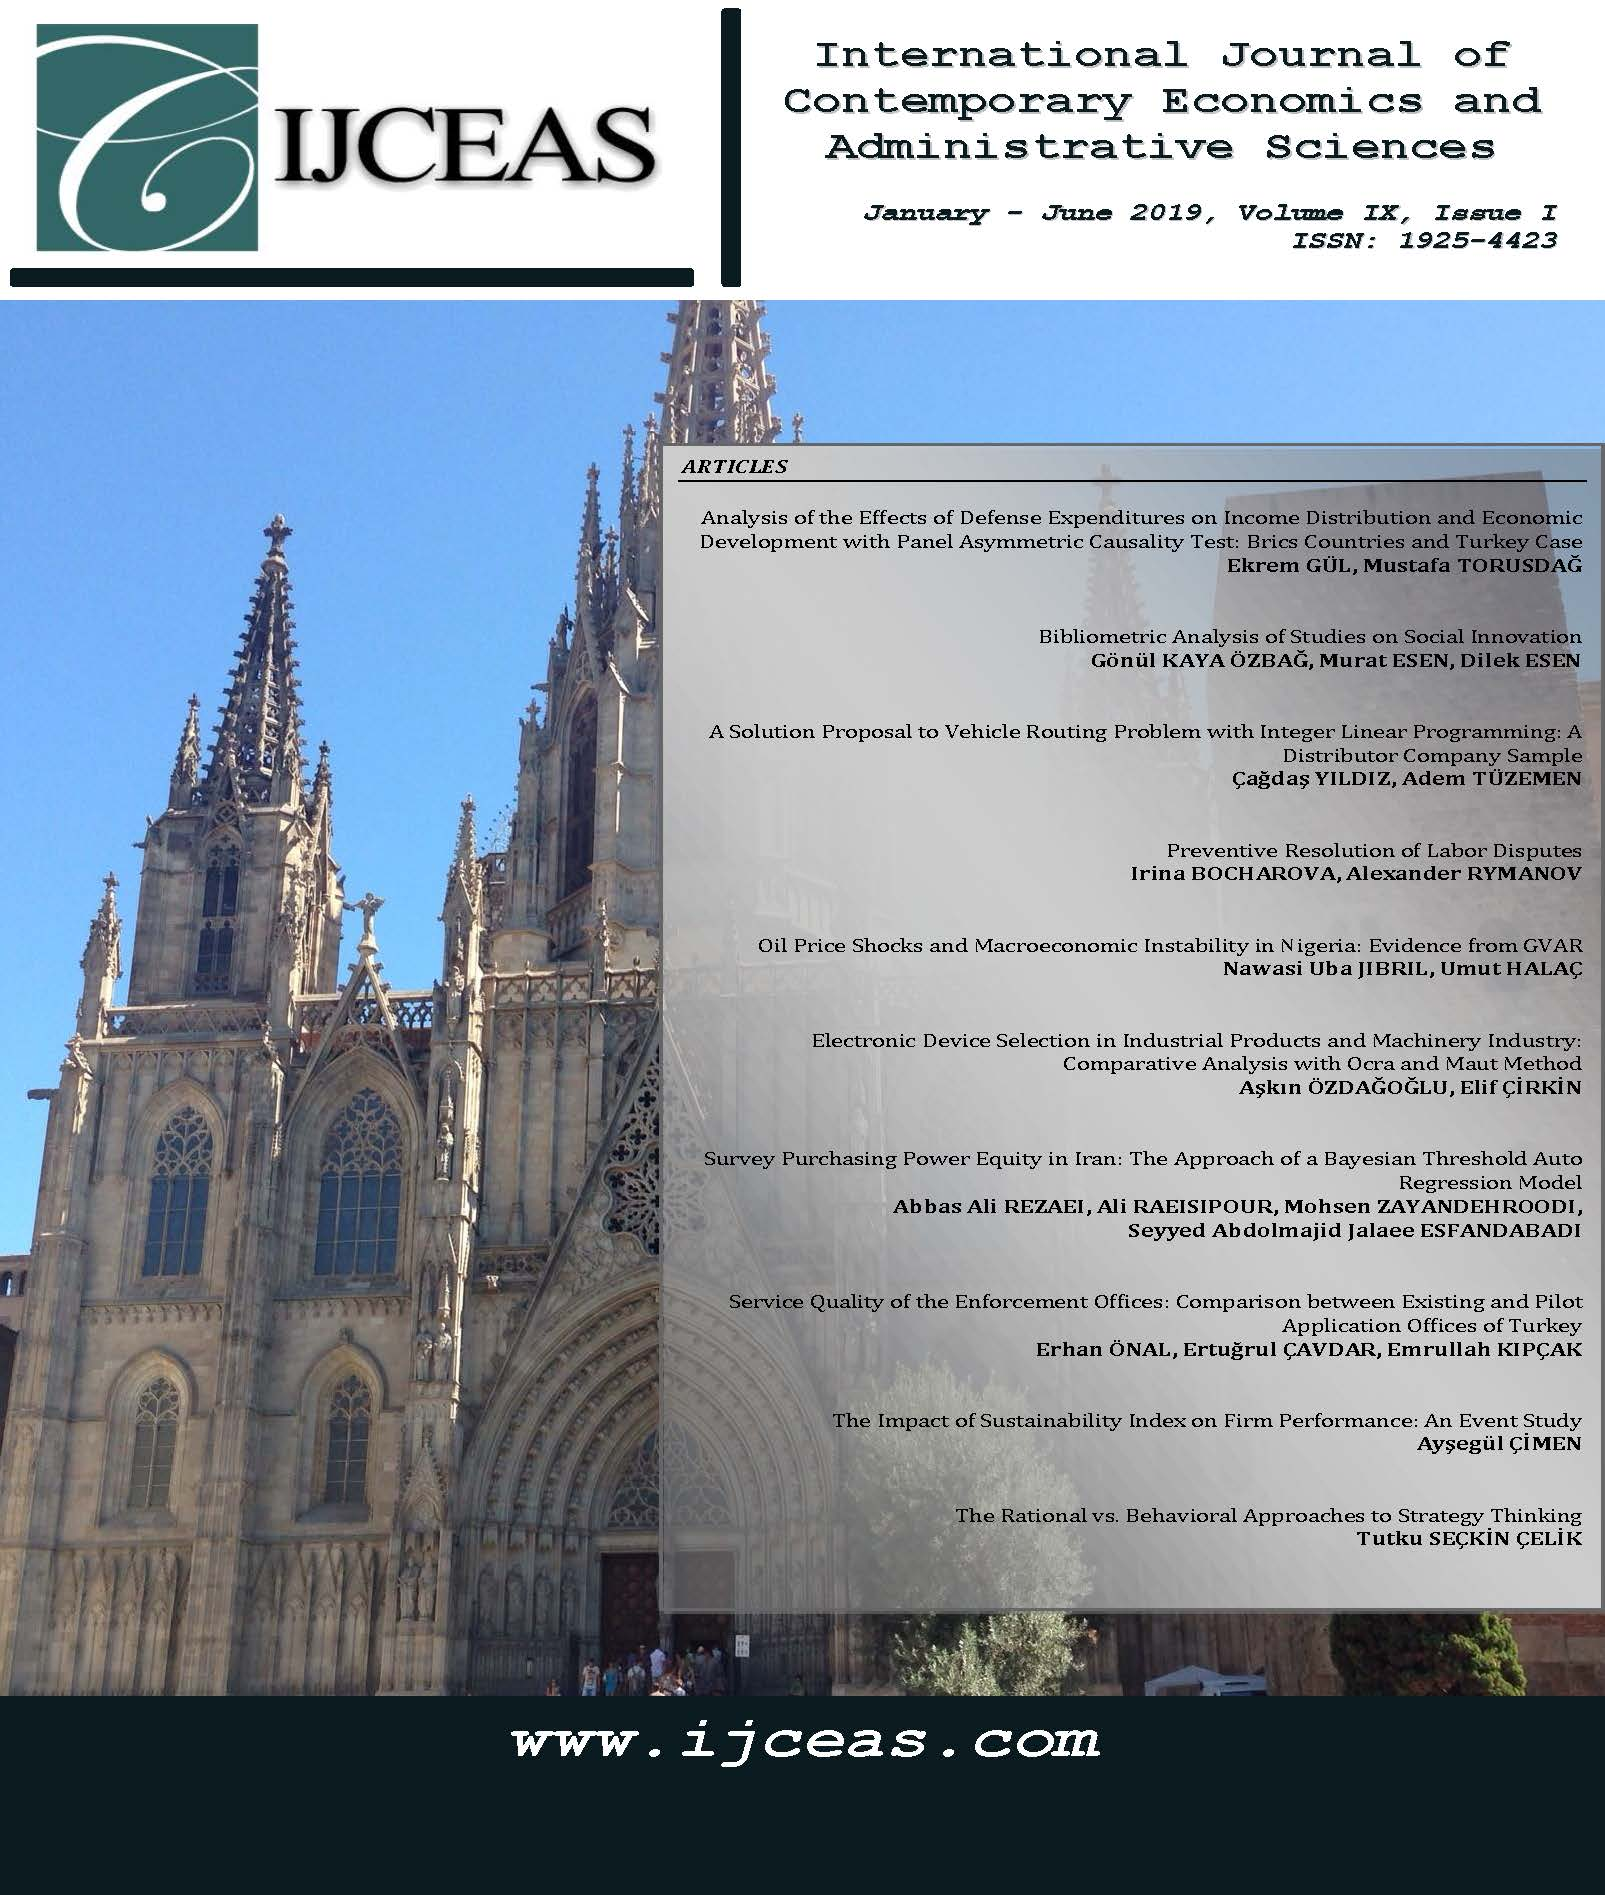 IJCEAS Volume IX, ISSUE I, Cover Image